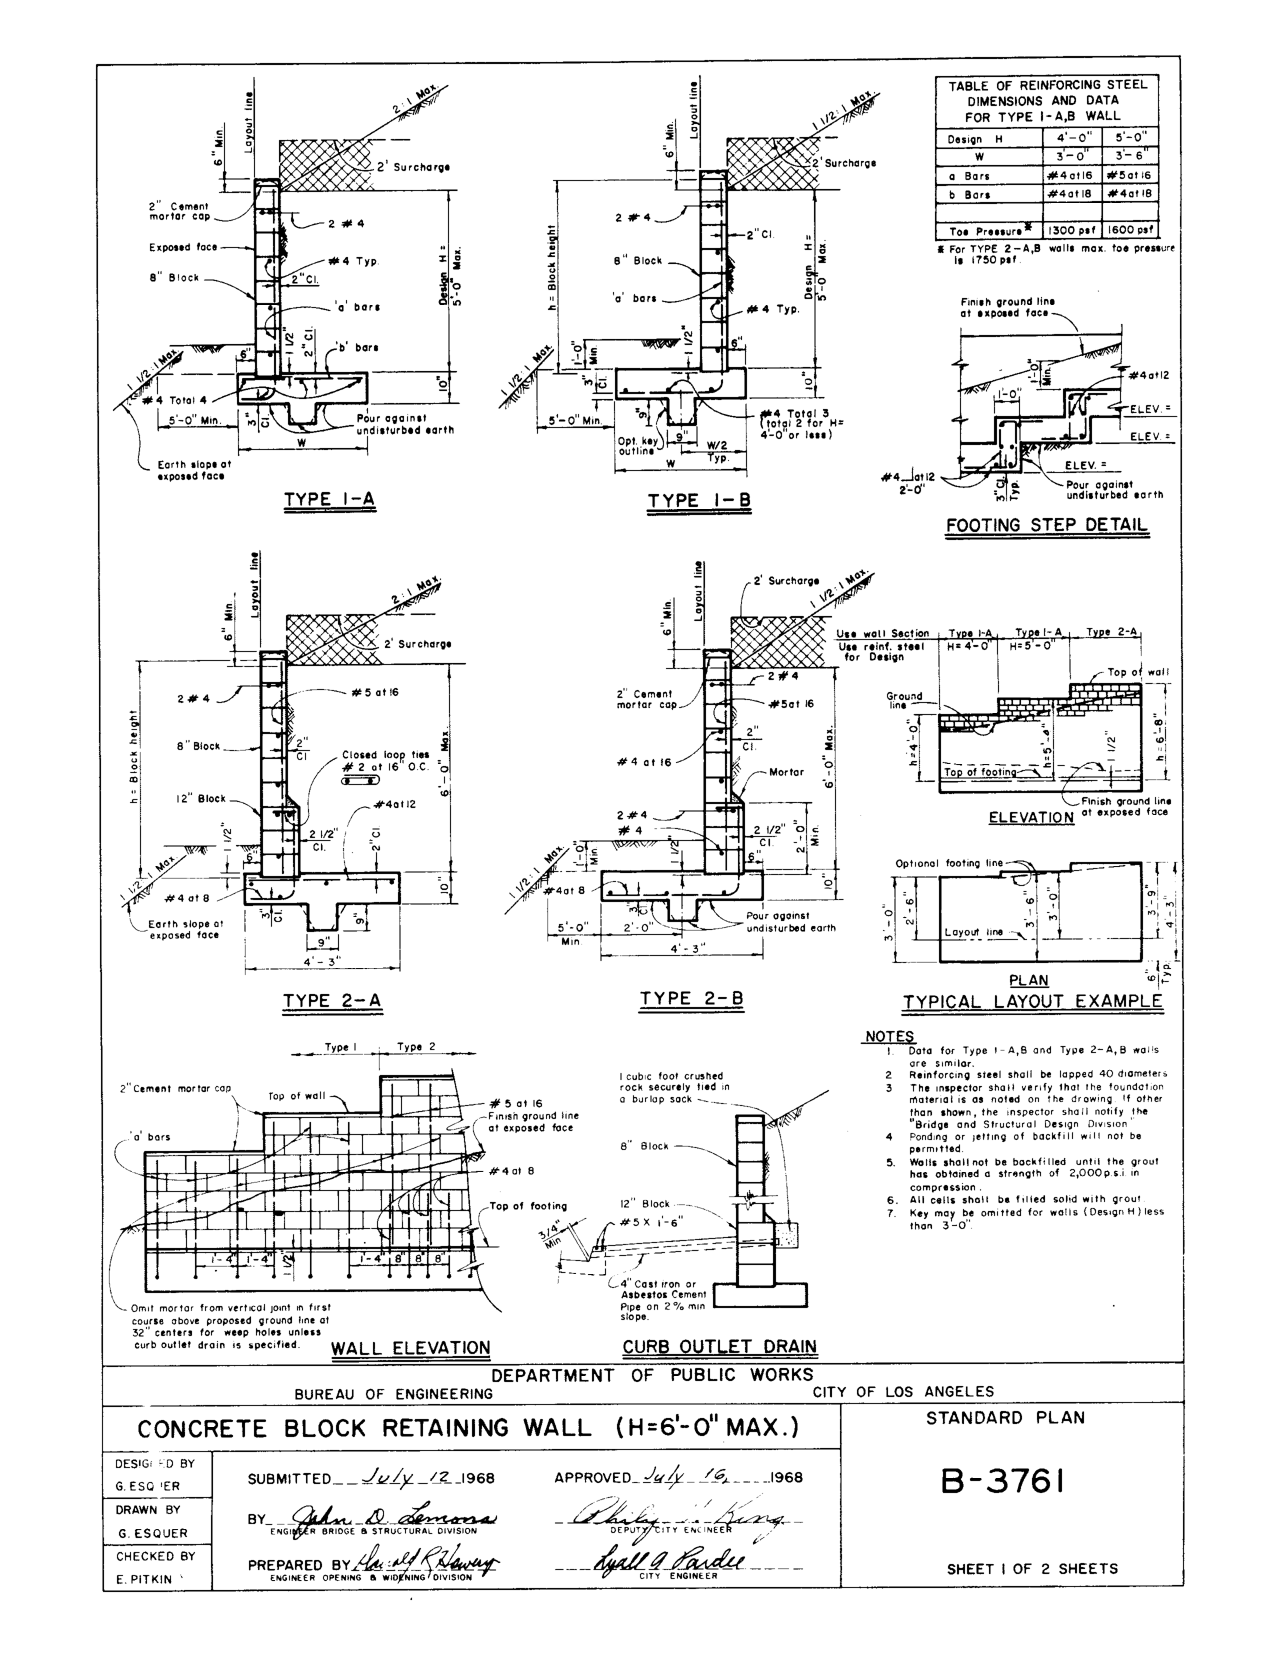 Concrete Block Retaining Wall Design block wall design cmu block design plans google search block wall details best decor Concrete Block Retaining Wall Detail